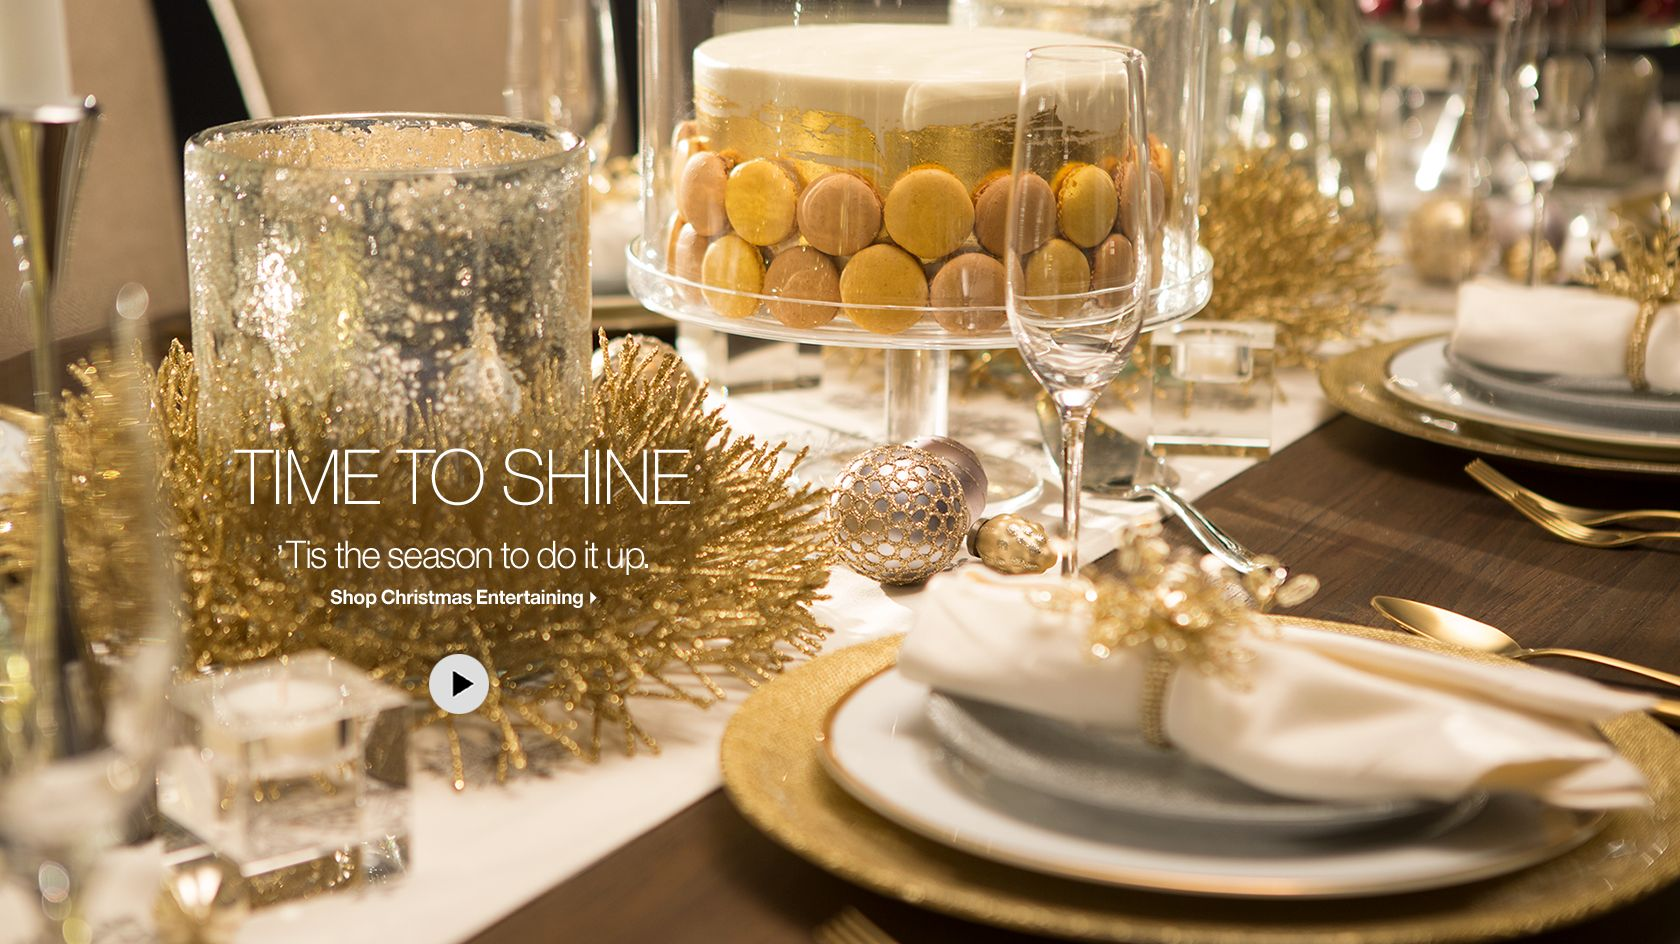 Furniture, Home Decor And Wedding Registry